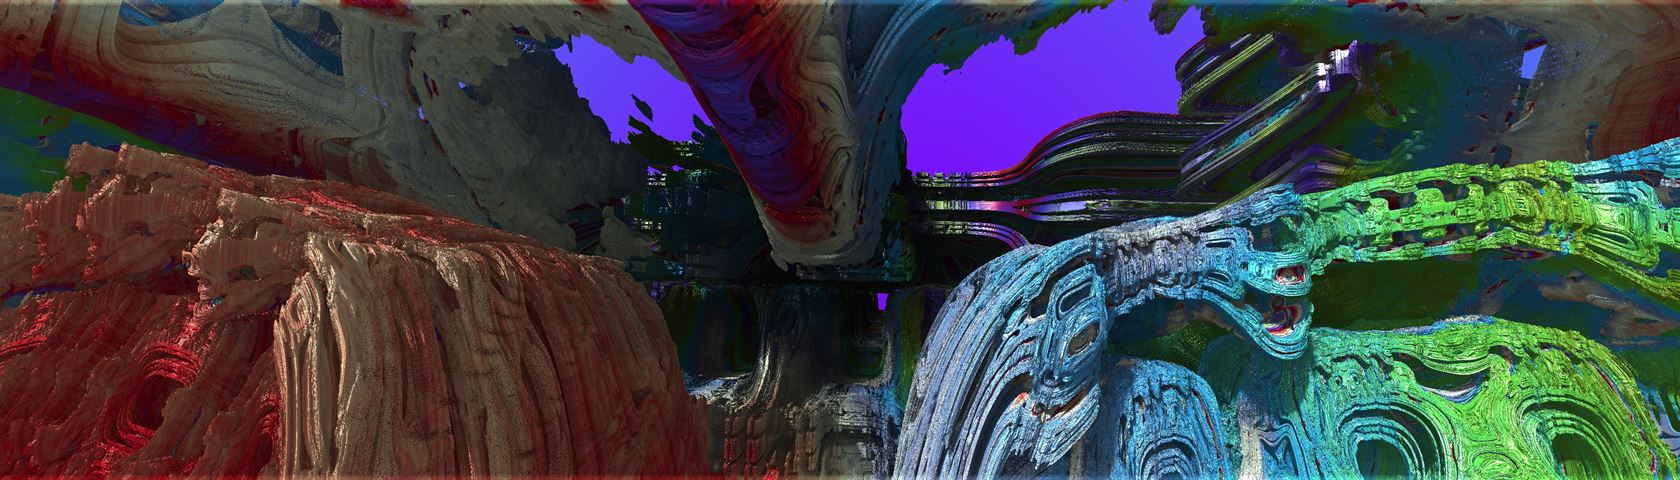 Inexplicable Xenomorphic Constructs of the Fractal Expanse